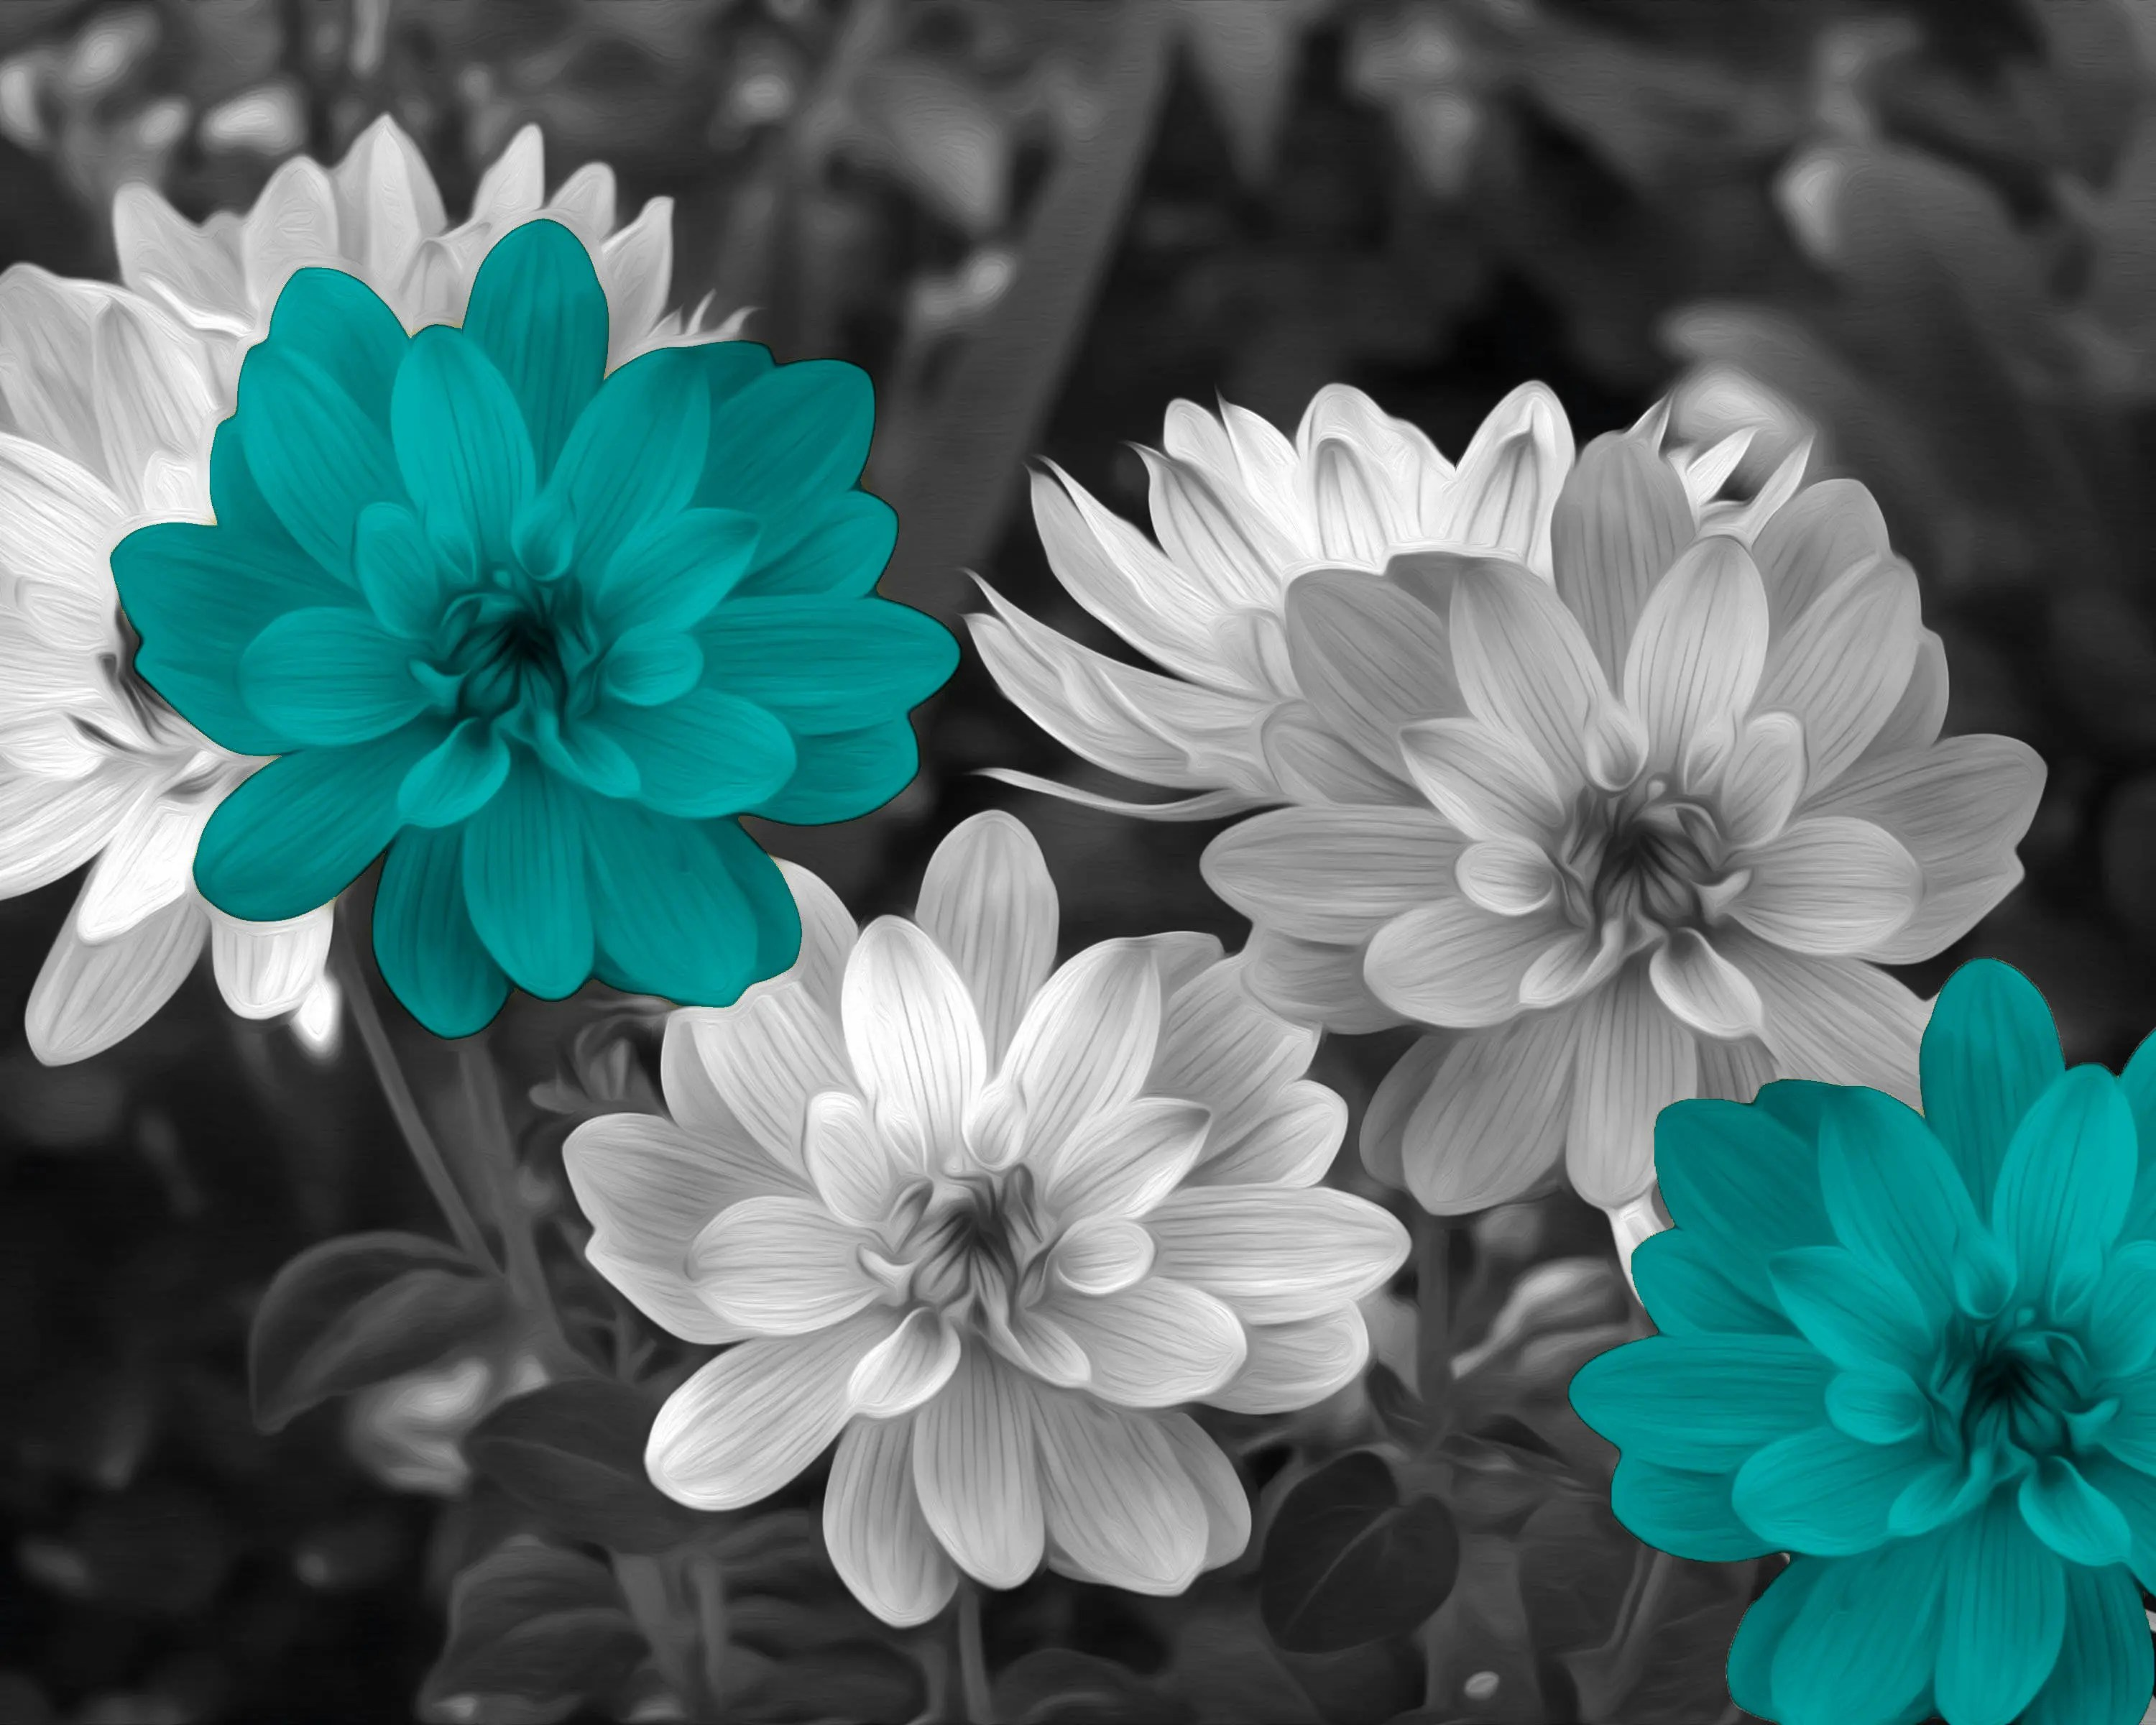 Teal flowers   Etsy Black White Teal Wall Decor  Teal Flower Decor  Teal Gray Home Decor Wall  Art Picture